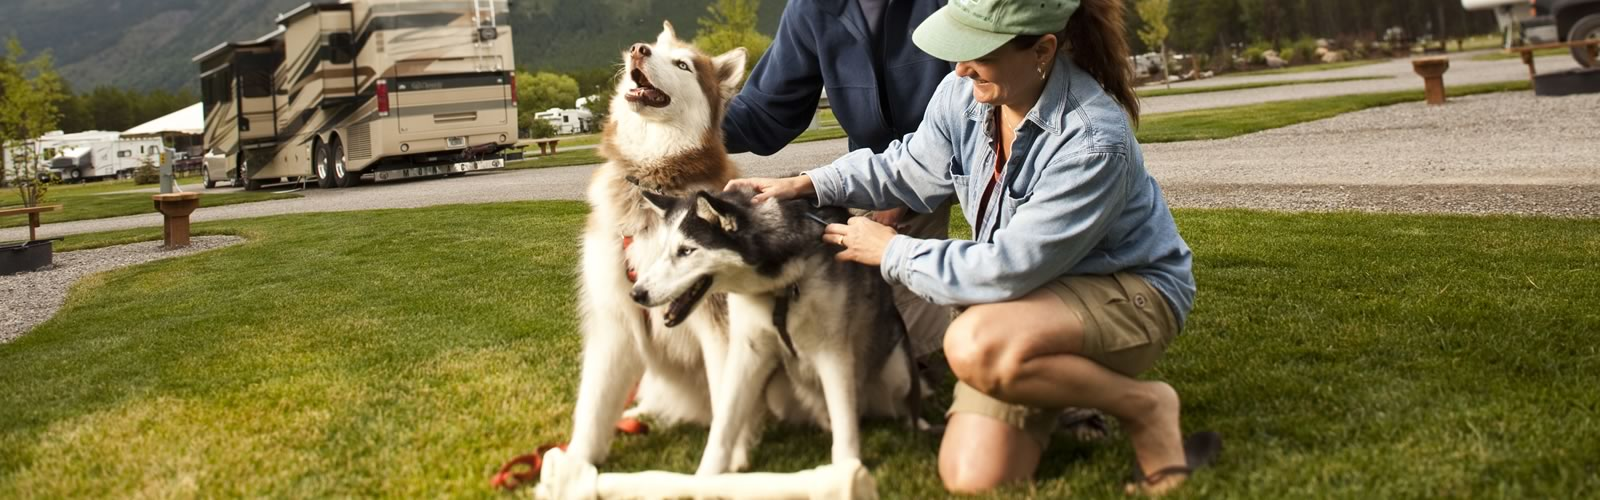 Pet Friendly - Camping in your RV is a sure way to be able to bring along your furry family member. Some campgrounds may restrict pets in cabins, but your RV is a pet-friendly zone. KOA Campgrounds are pet friendly